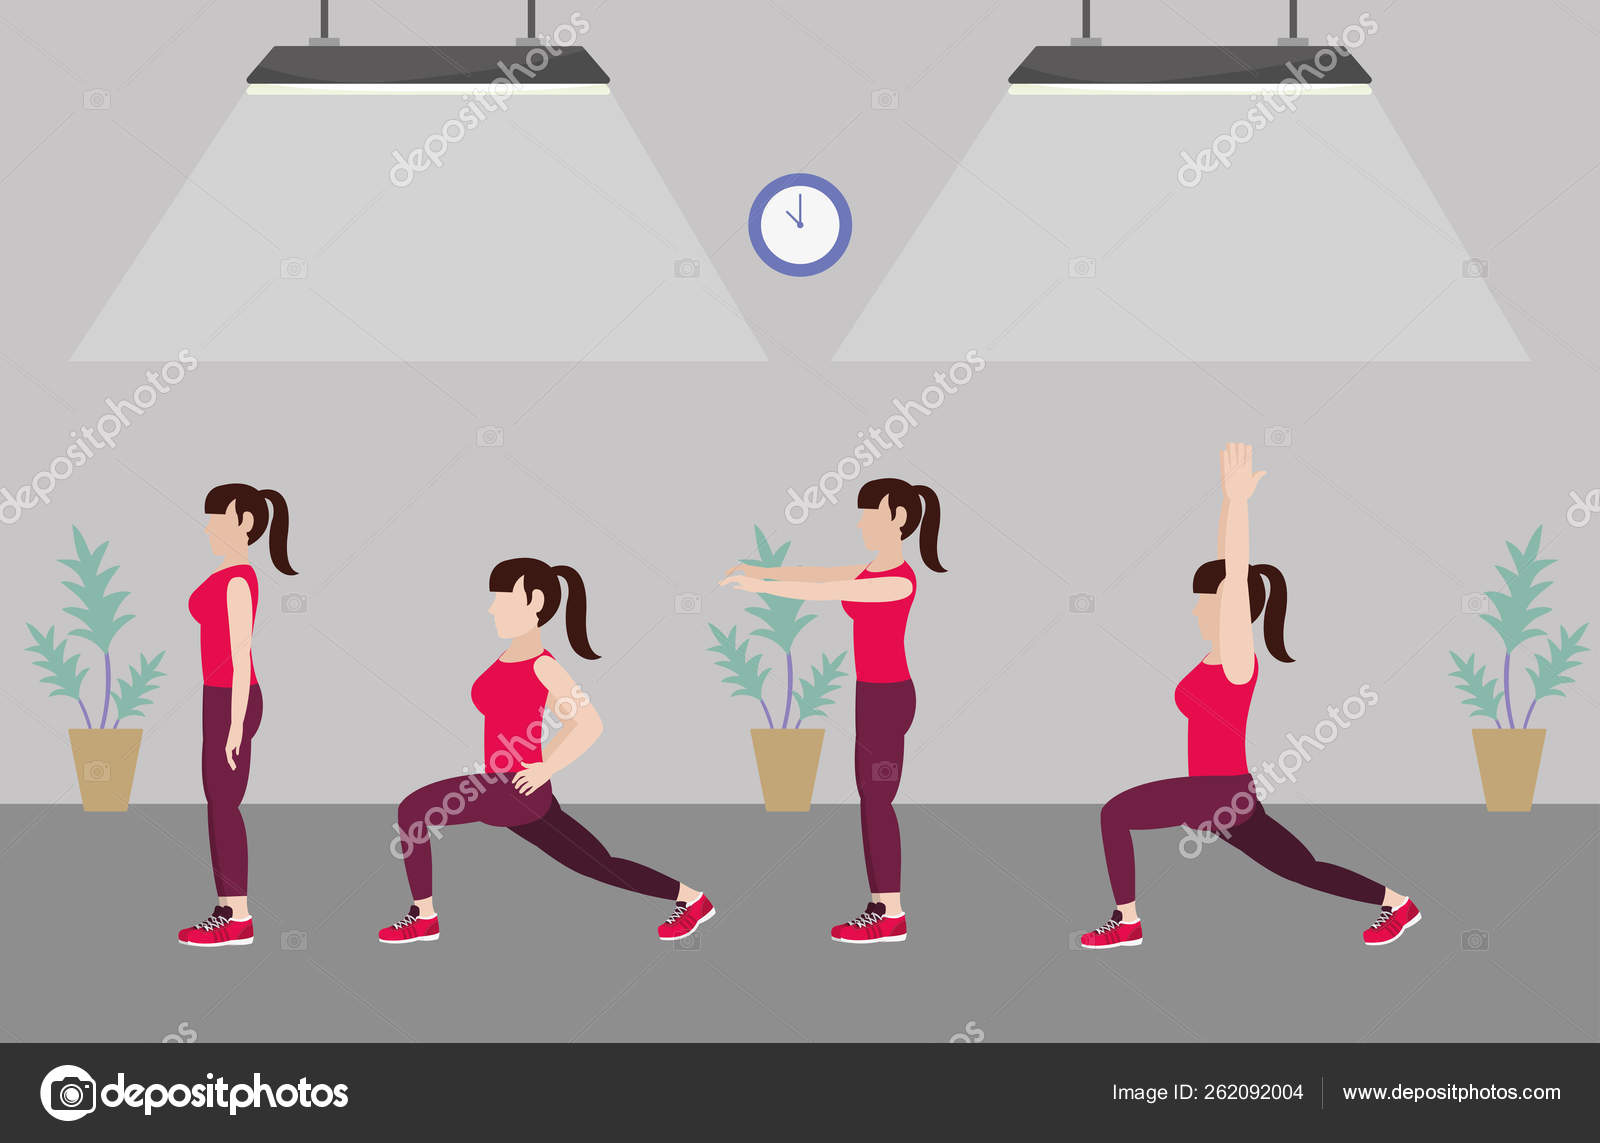 Fit Women Doing Exercise Stock Vector C Stockgiu 262092004 Fat cartoon people different stages vector illustration. https depositphotos com 262092004 stock illustration fit women doing exercise html